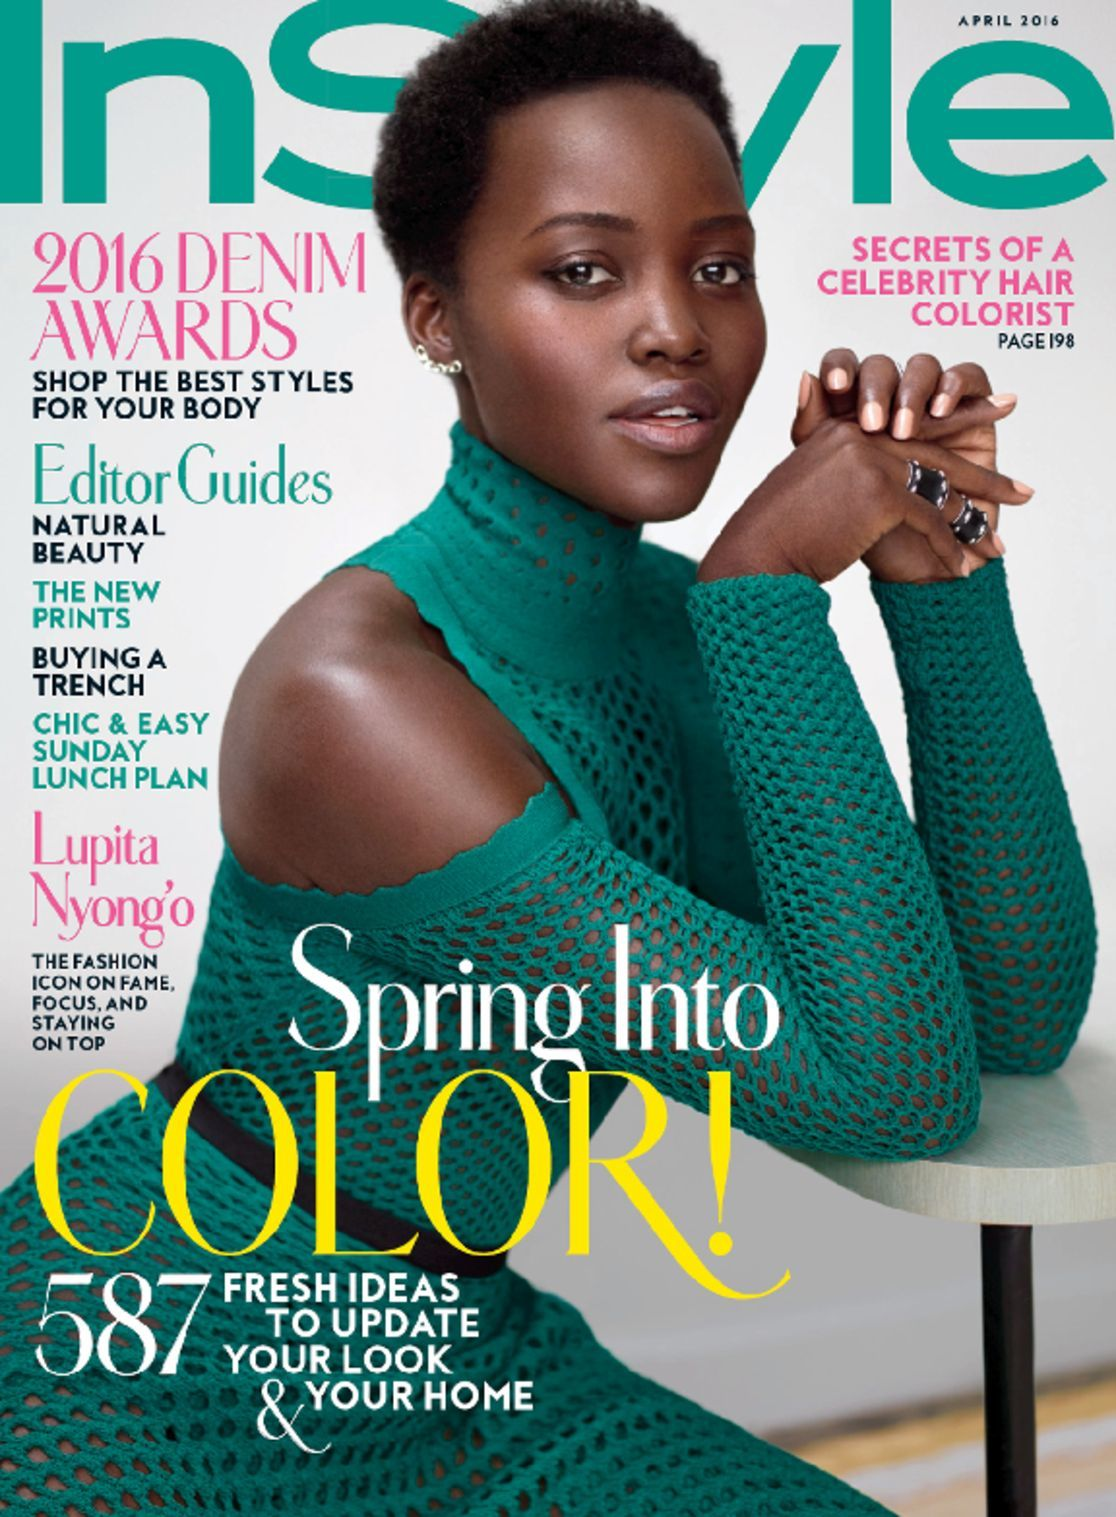 Fill out the form to snag yourself a FREE Subscription to InStyle Magazine! Please note that you can skip the optional questions. Your first issue should arrive within weeks. You'll never receive a bill.